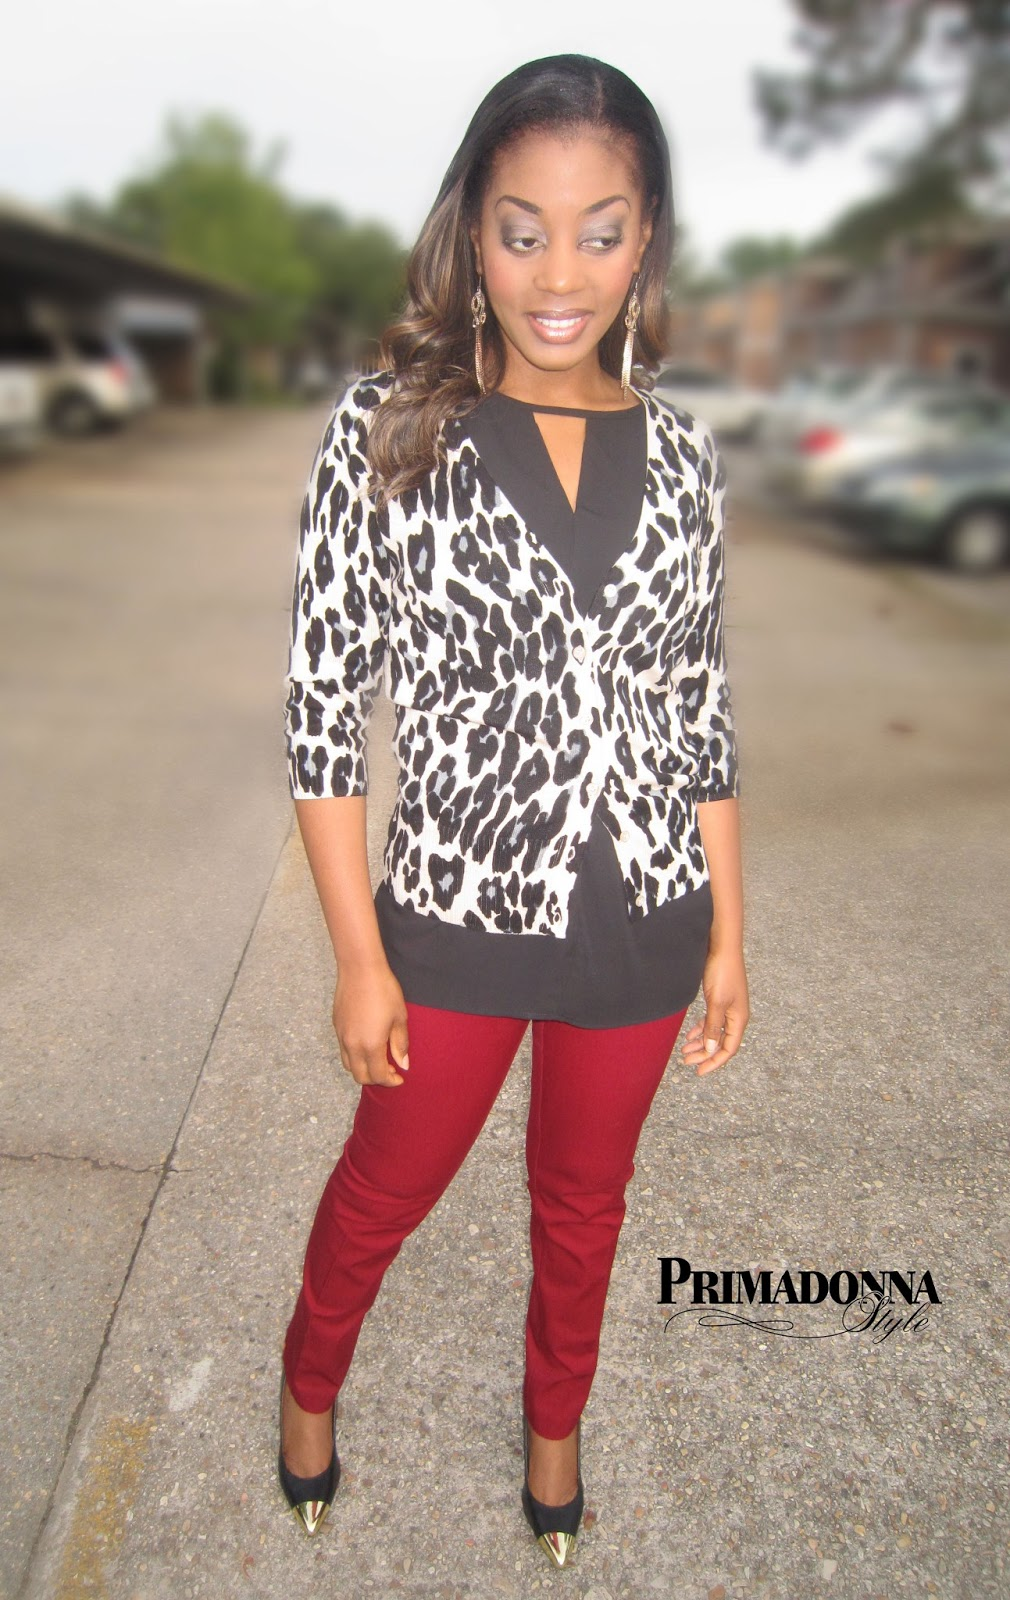 Primadonna Style: 100th Blog Post!: Leopard & Red